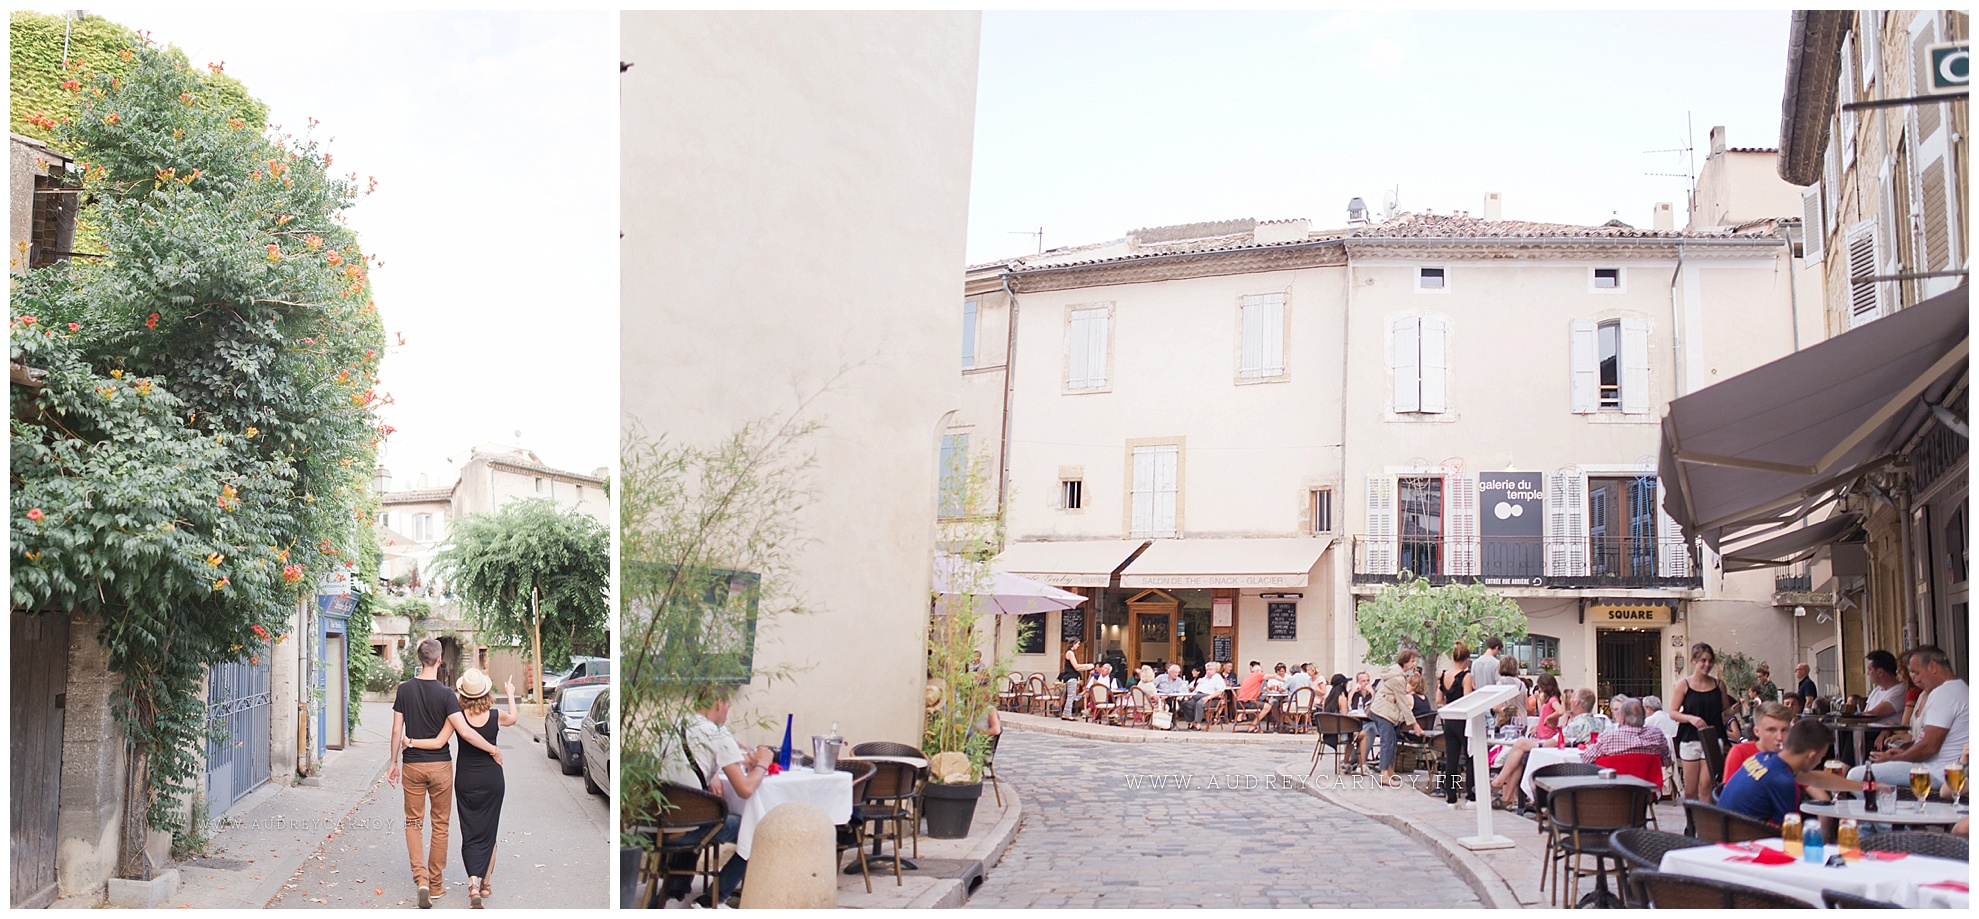 Seance grossesse Provence - Pertuis | Audrey & Jerome 9